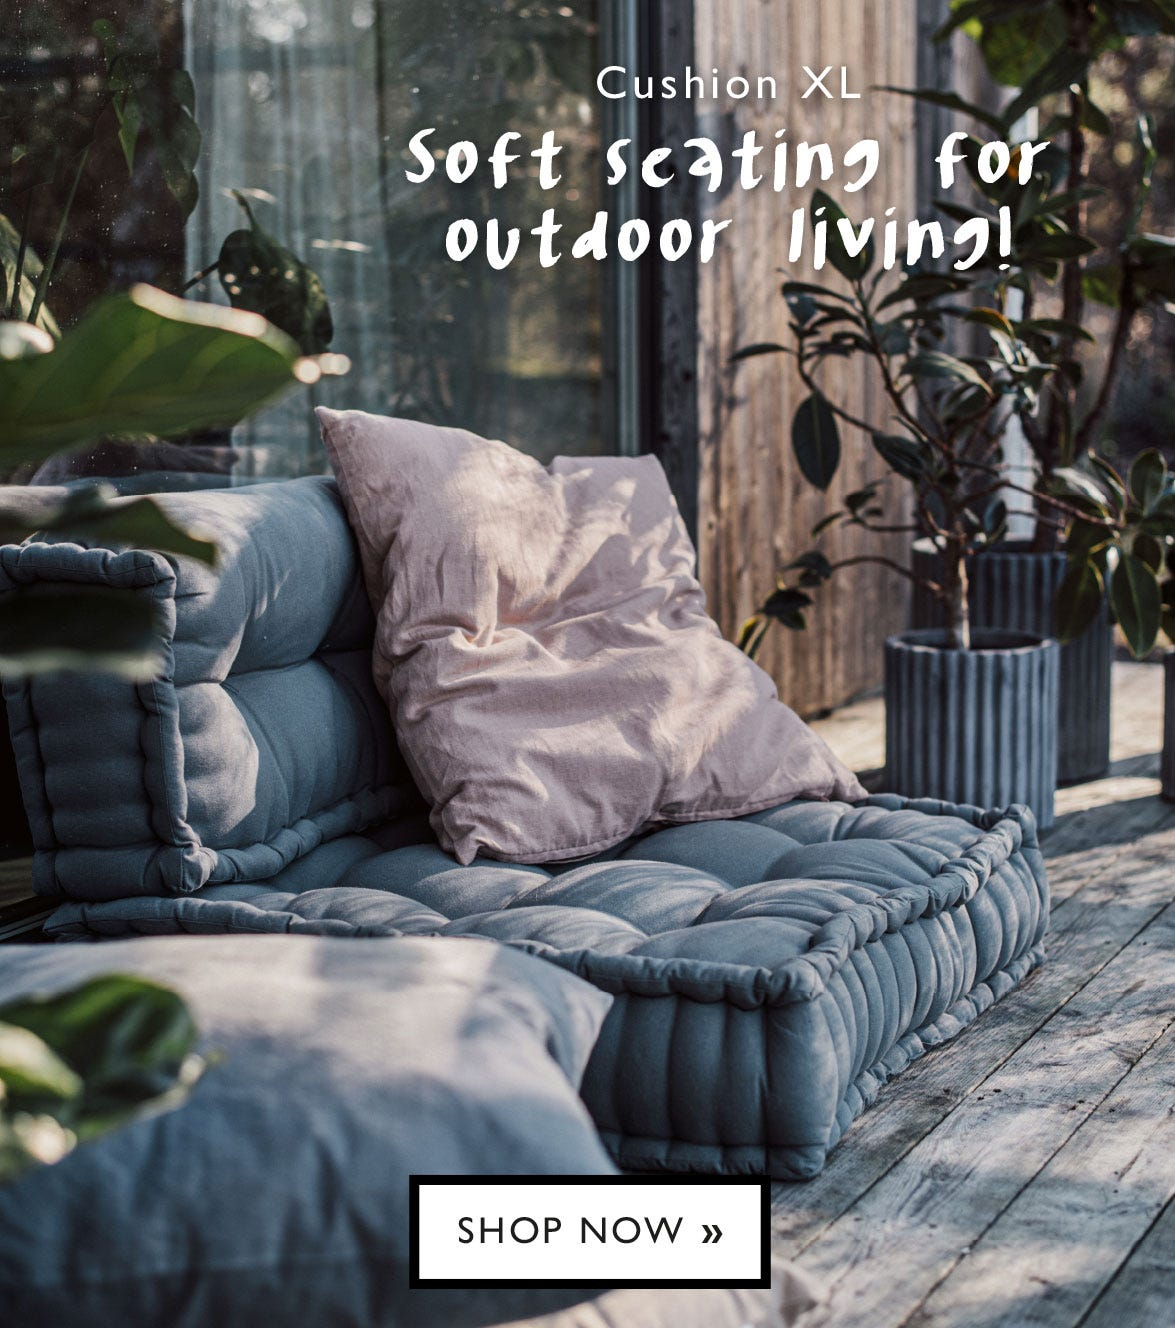 Soft seating for outdoor living!